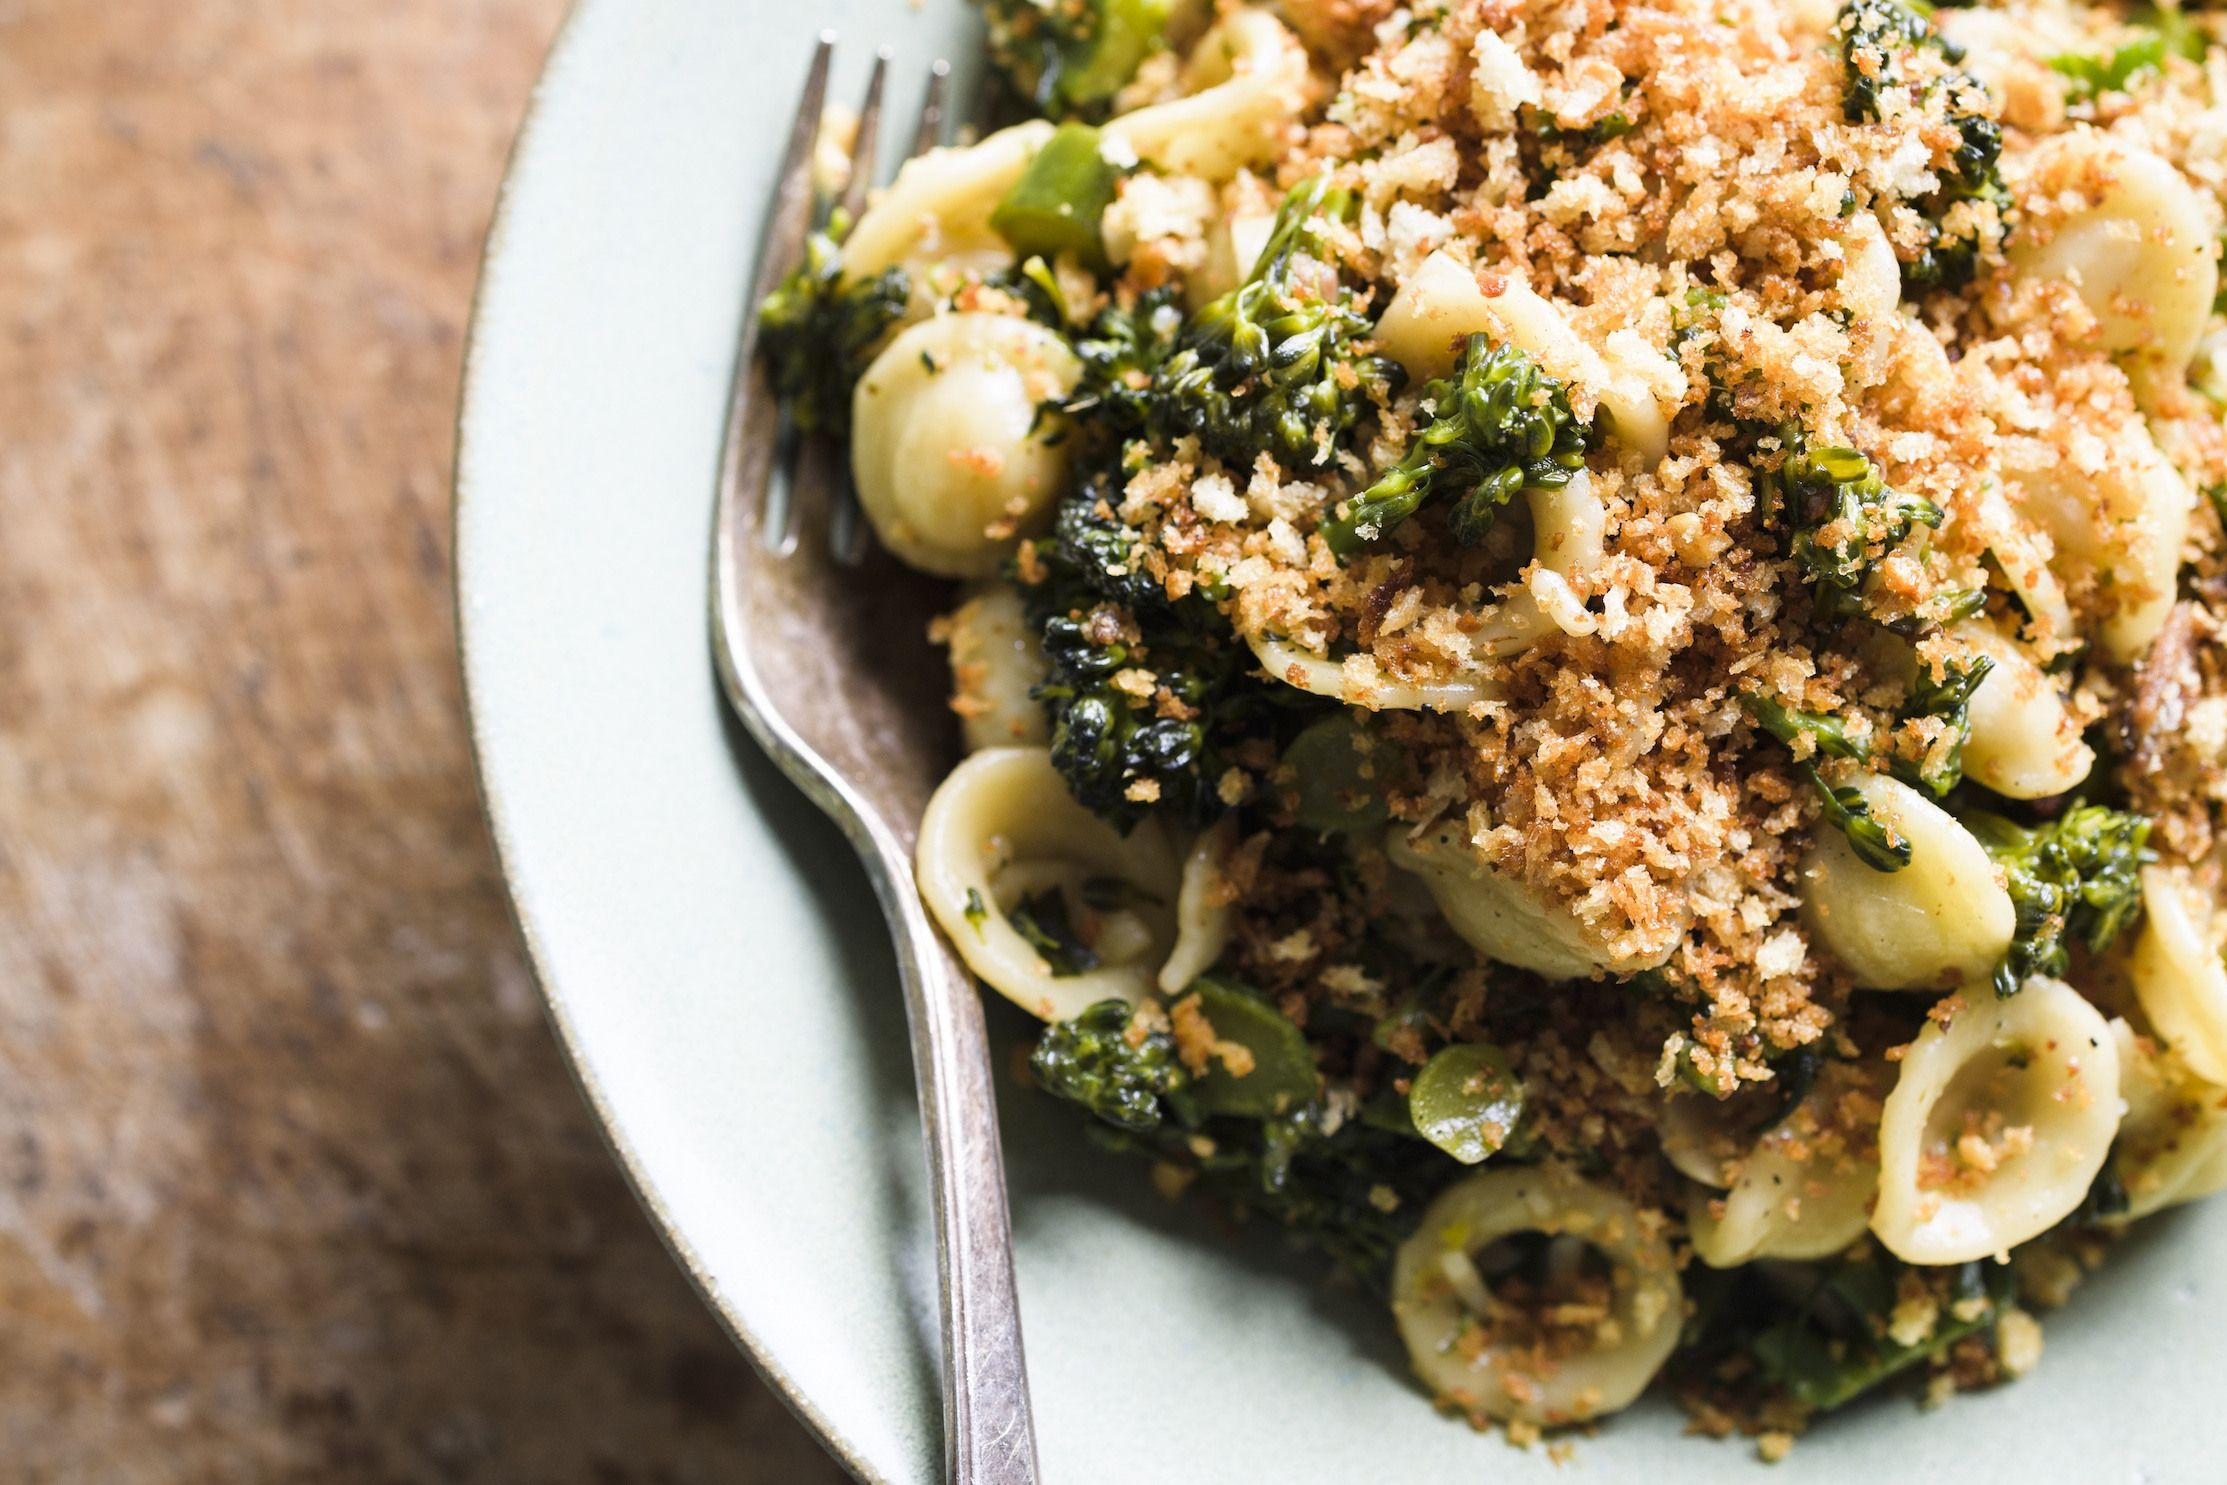 Orecchiette with Broccolini